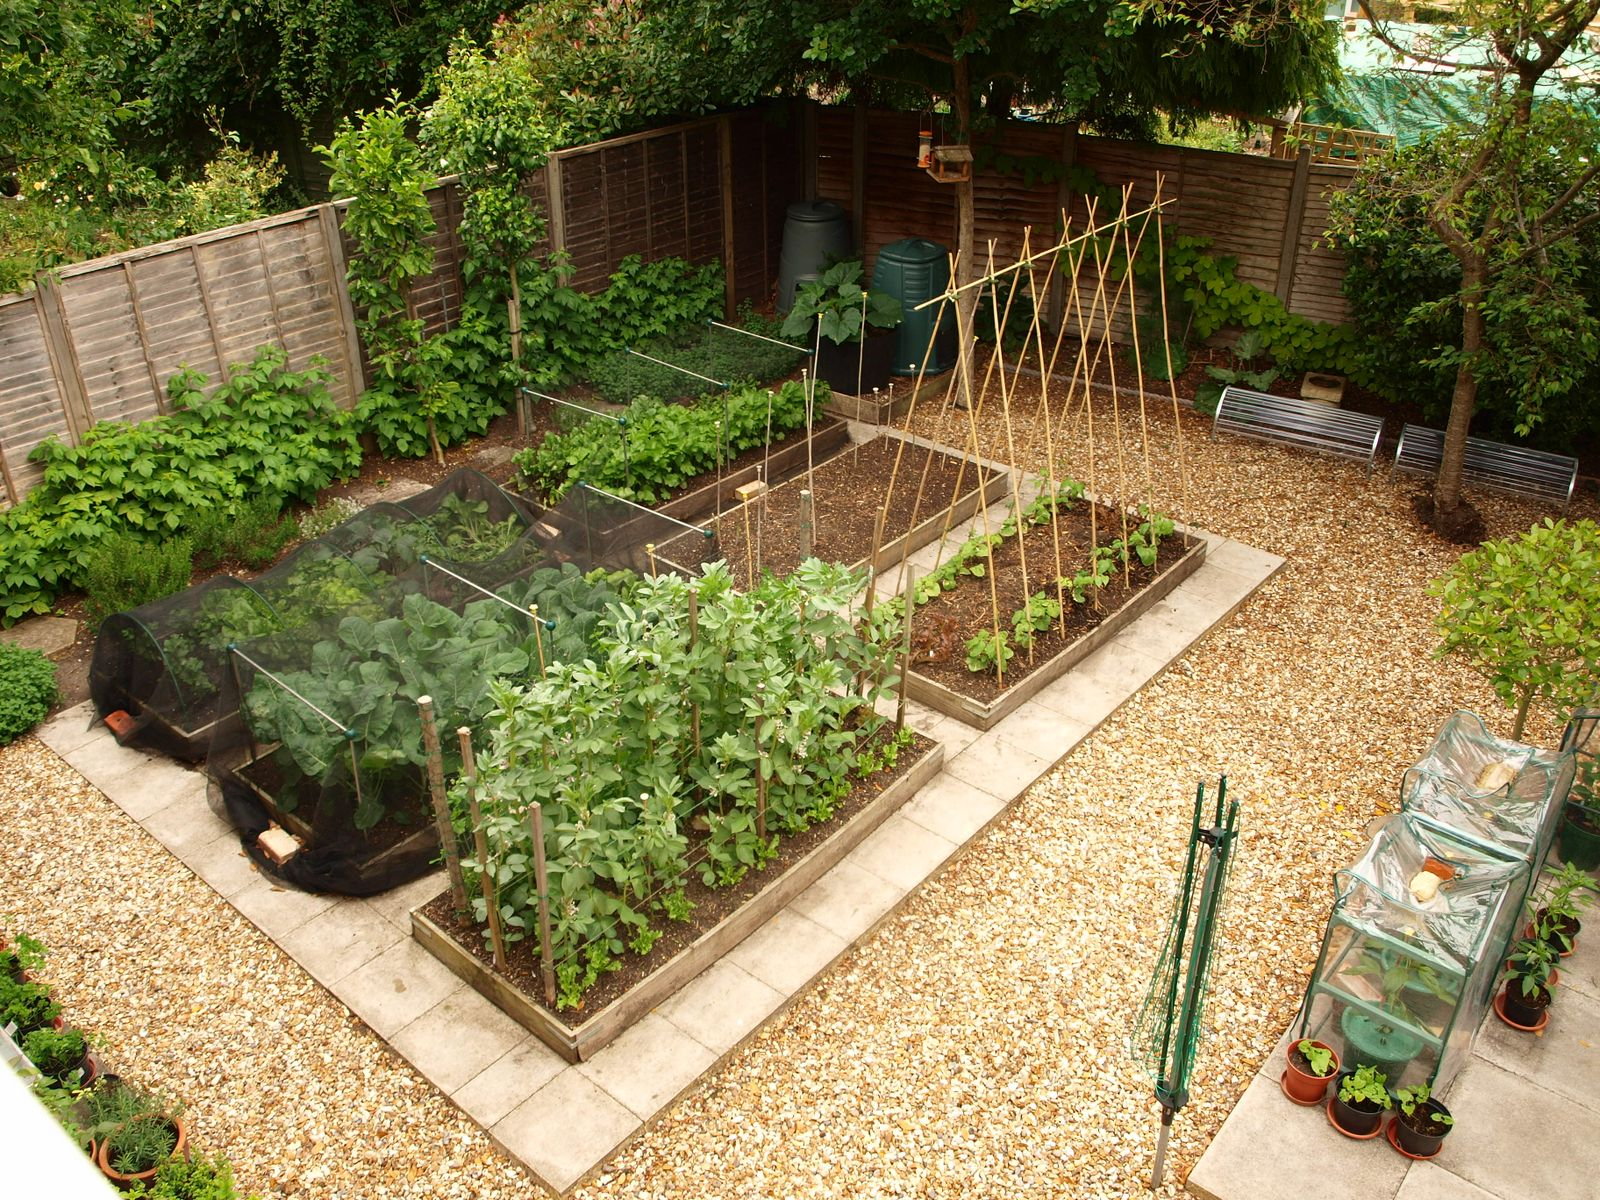 Superieur Gardening Advice For Beginners   Part 1